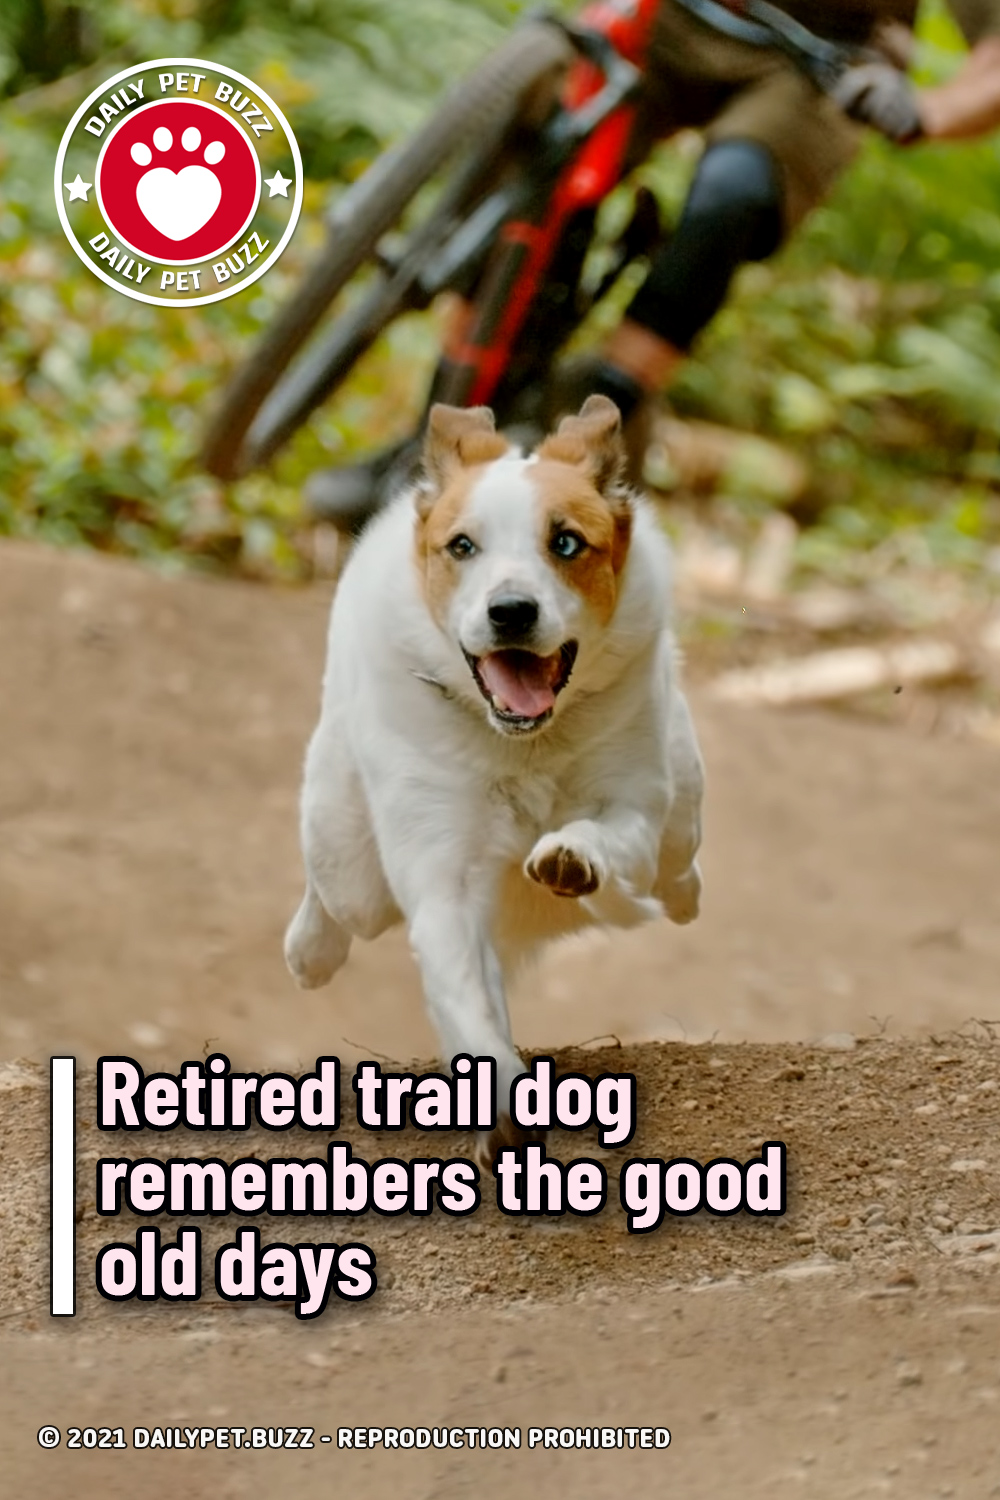 Retired trail dog remembers the good old days